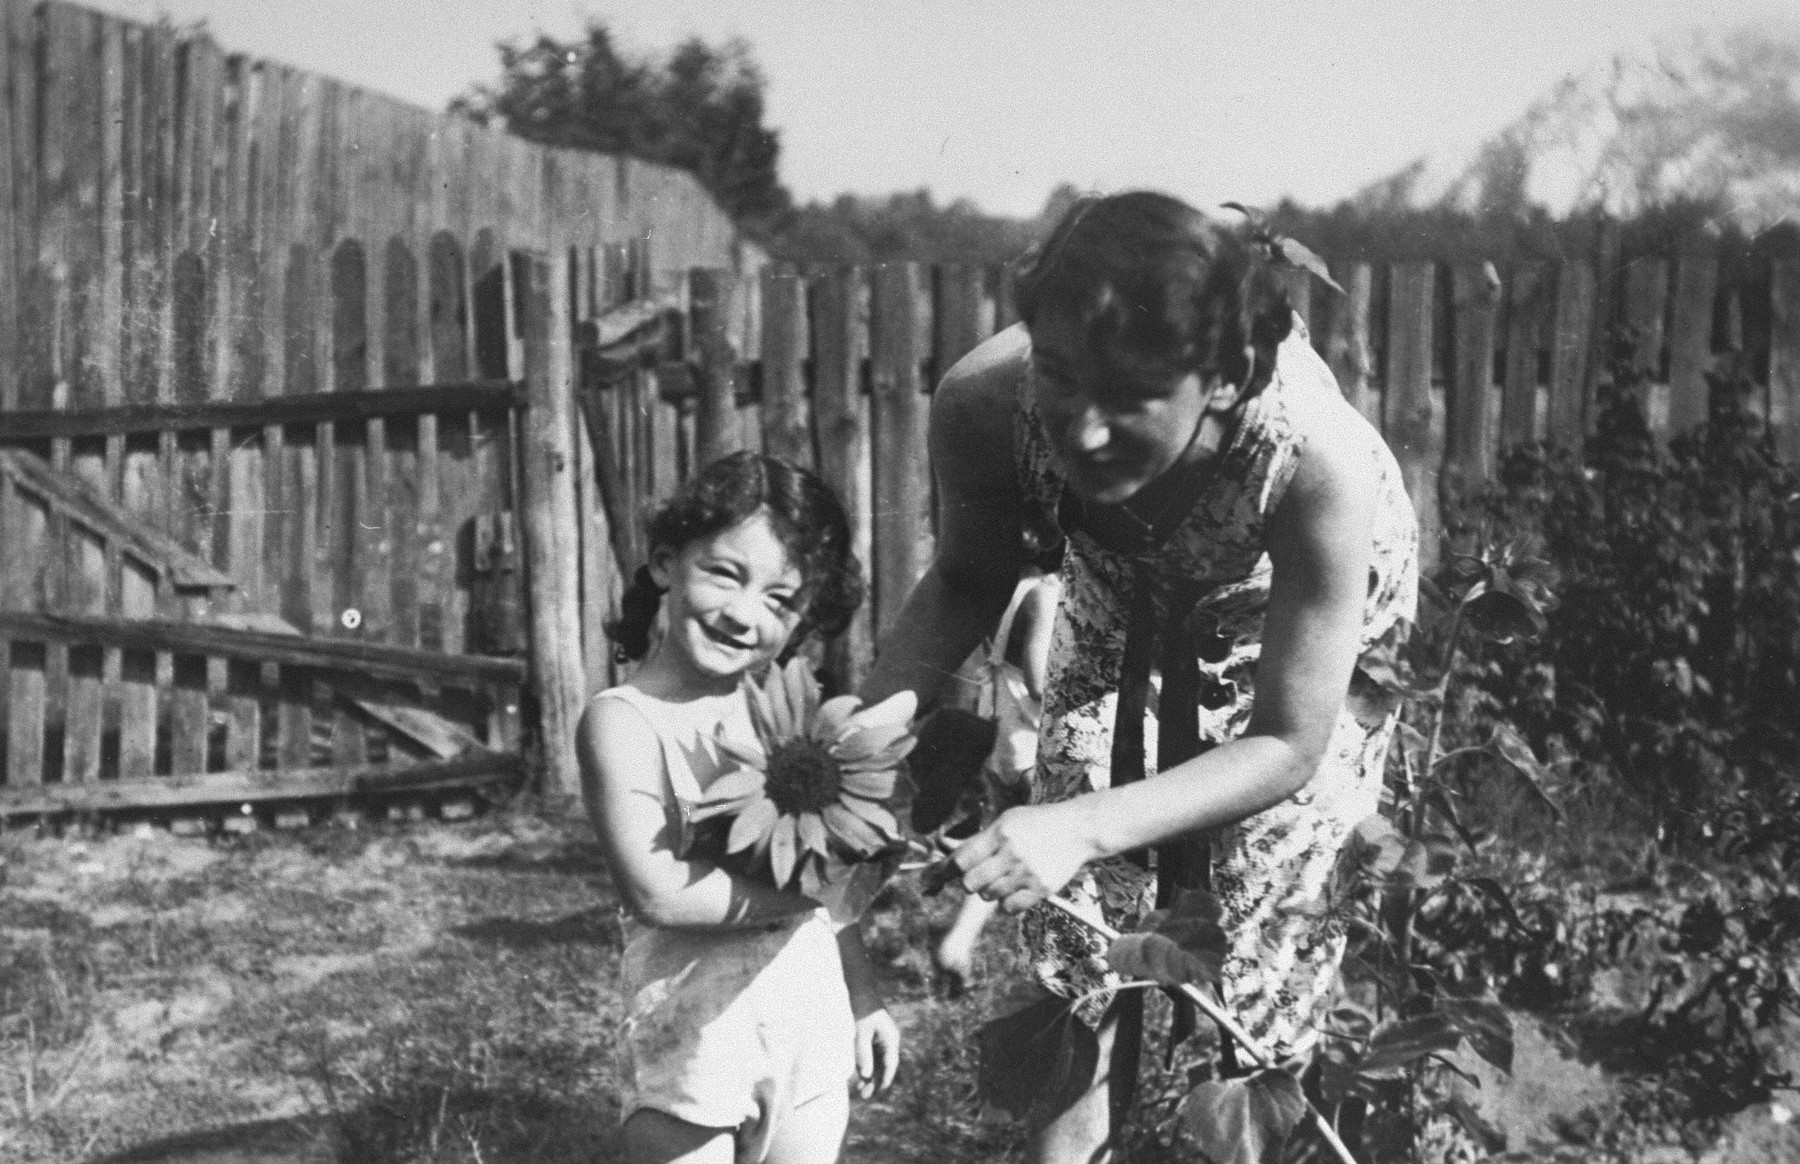 Maria Minc Morgenstern picks sunflowers with one of her twin daughters while living in hiding in occupied Poland.